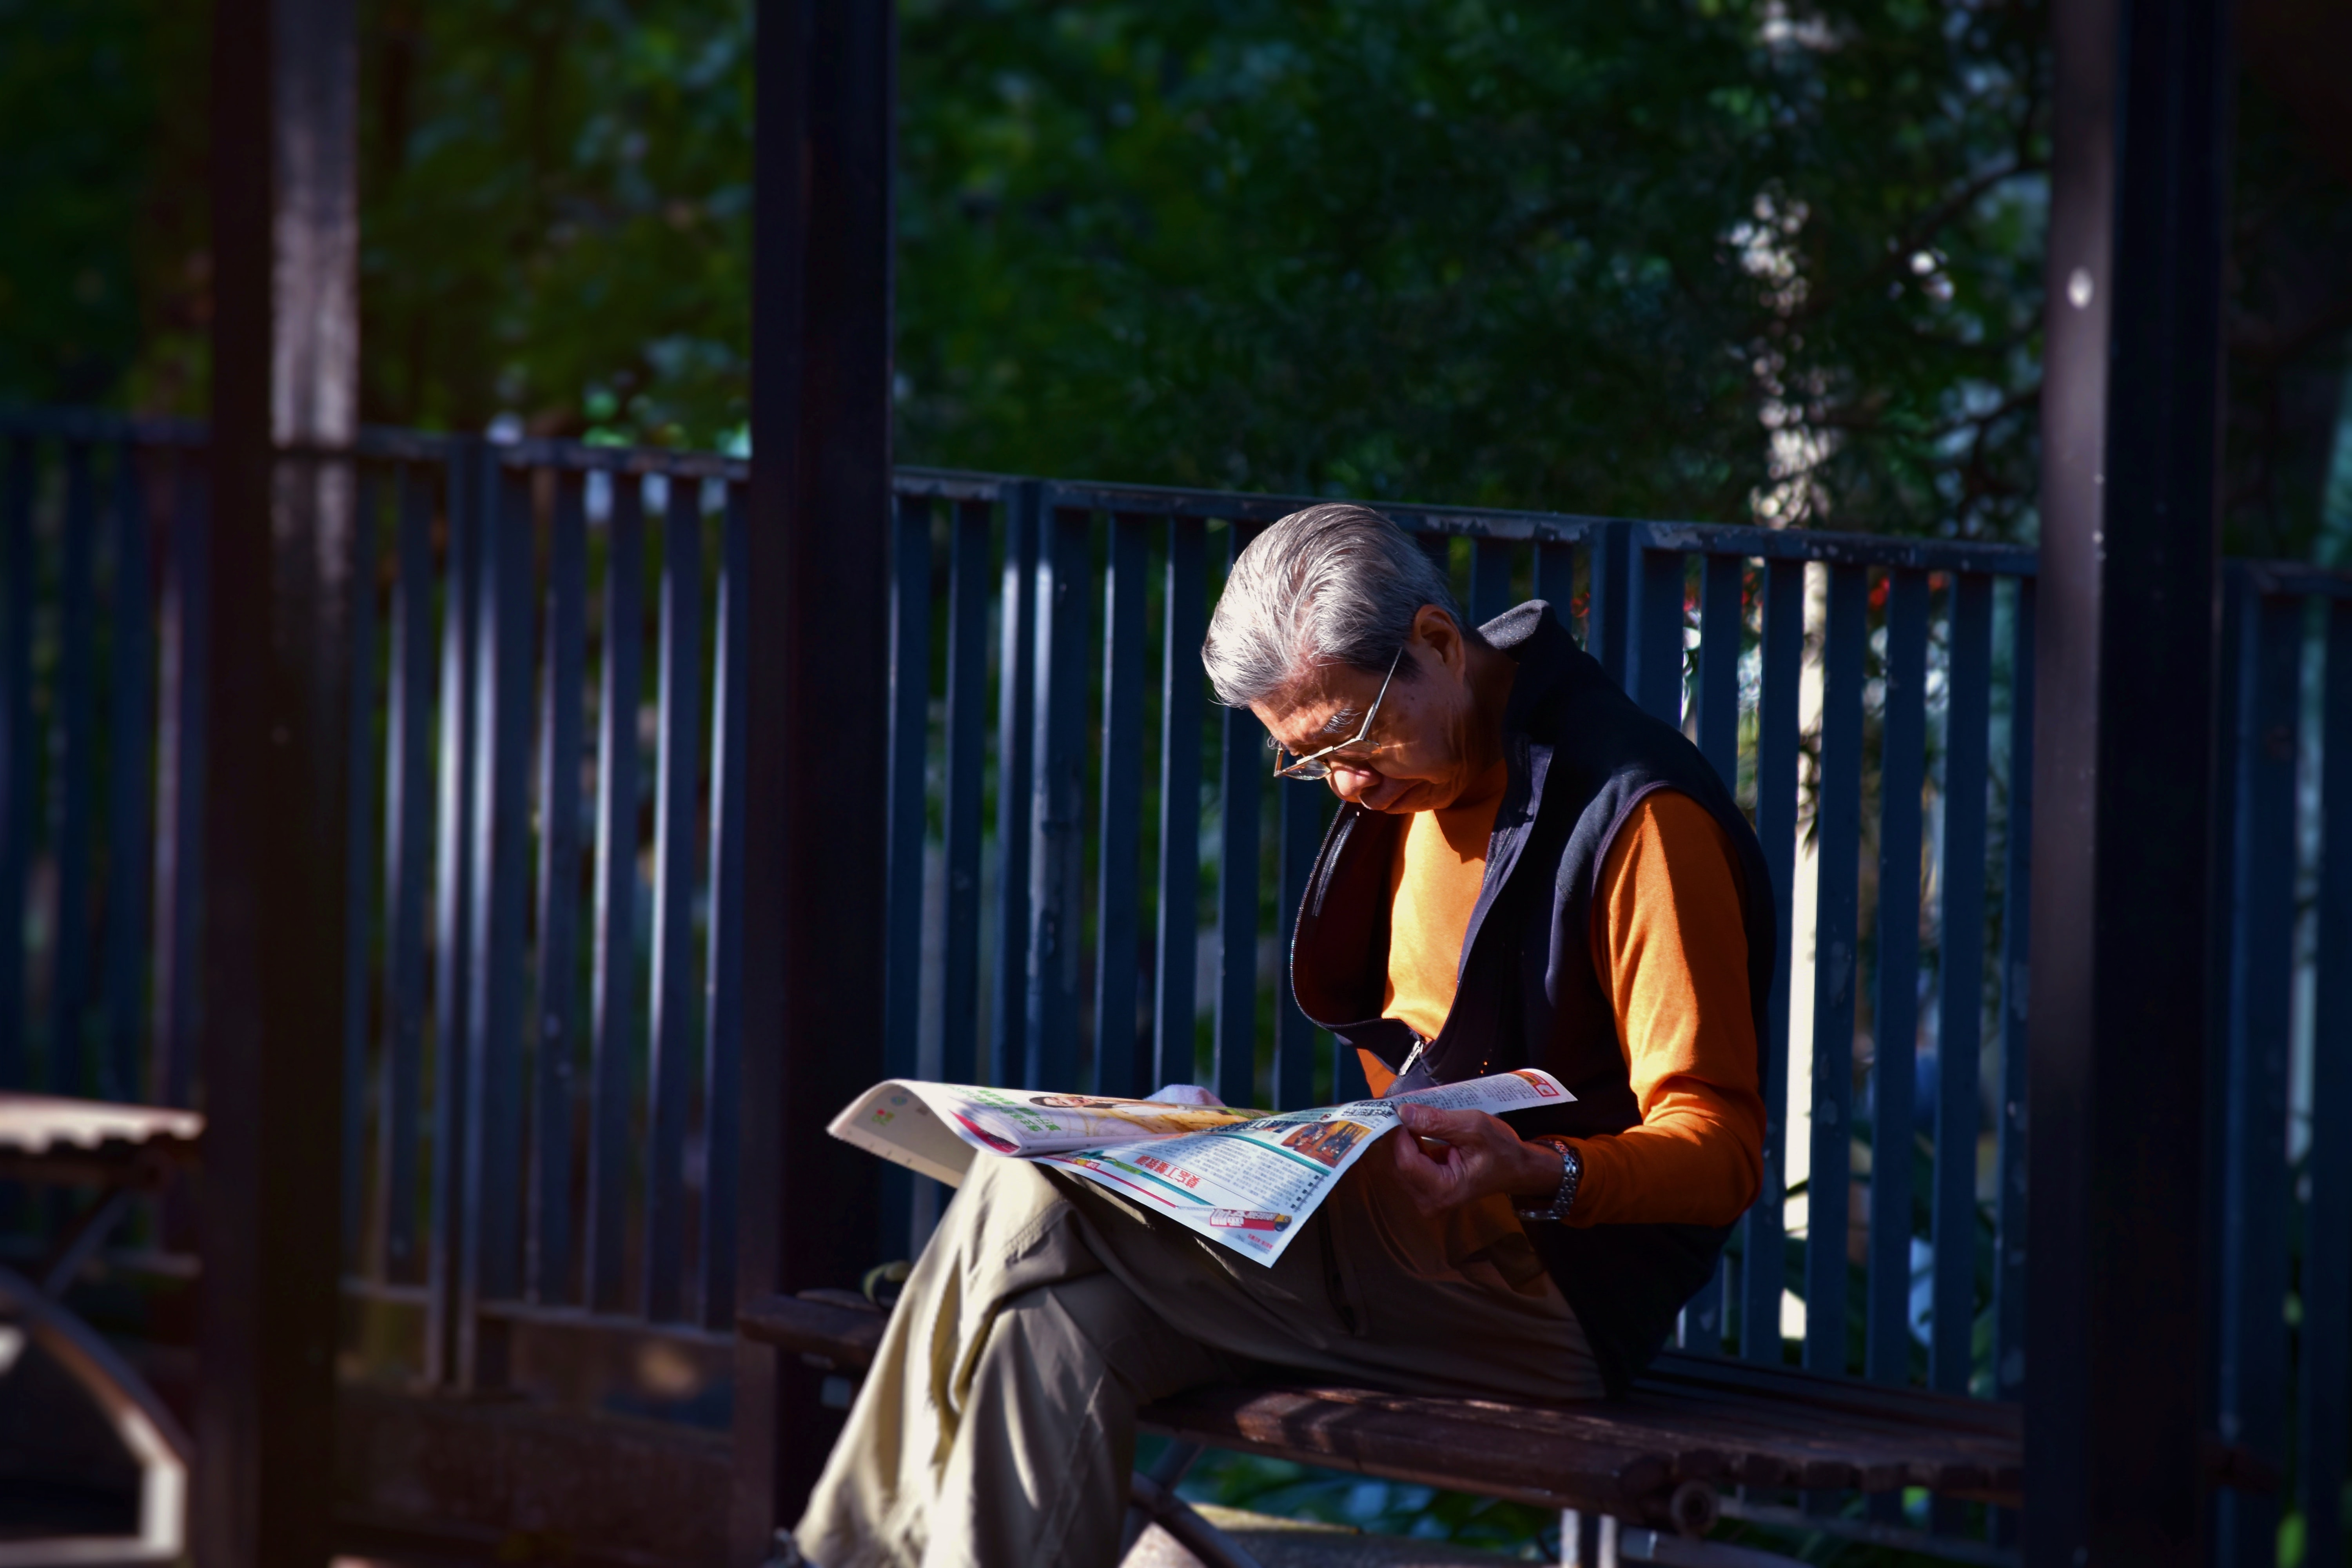 man reading newspaper while sitting on bench in front of wooden fence